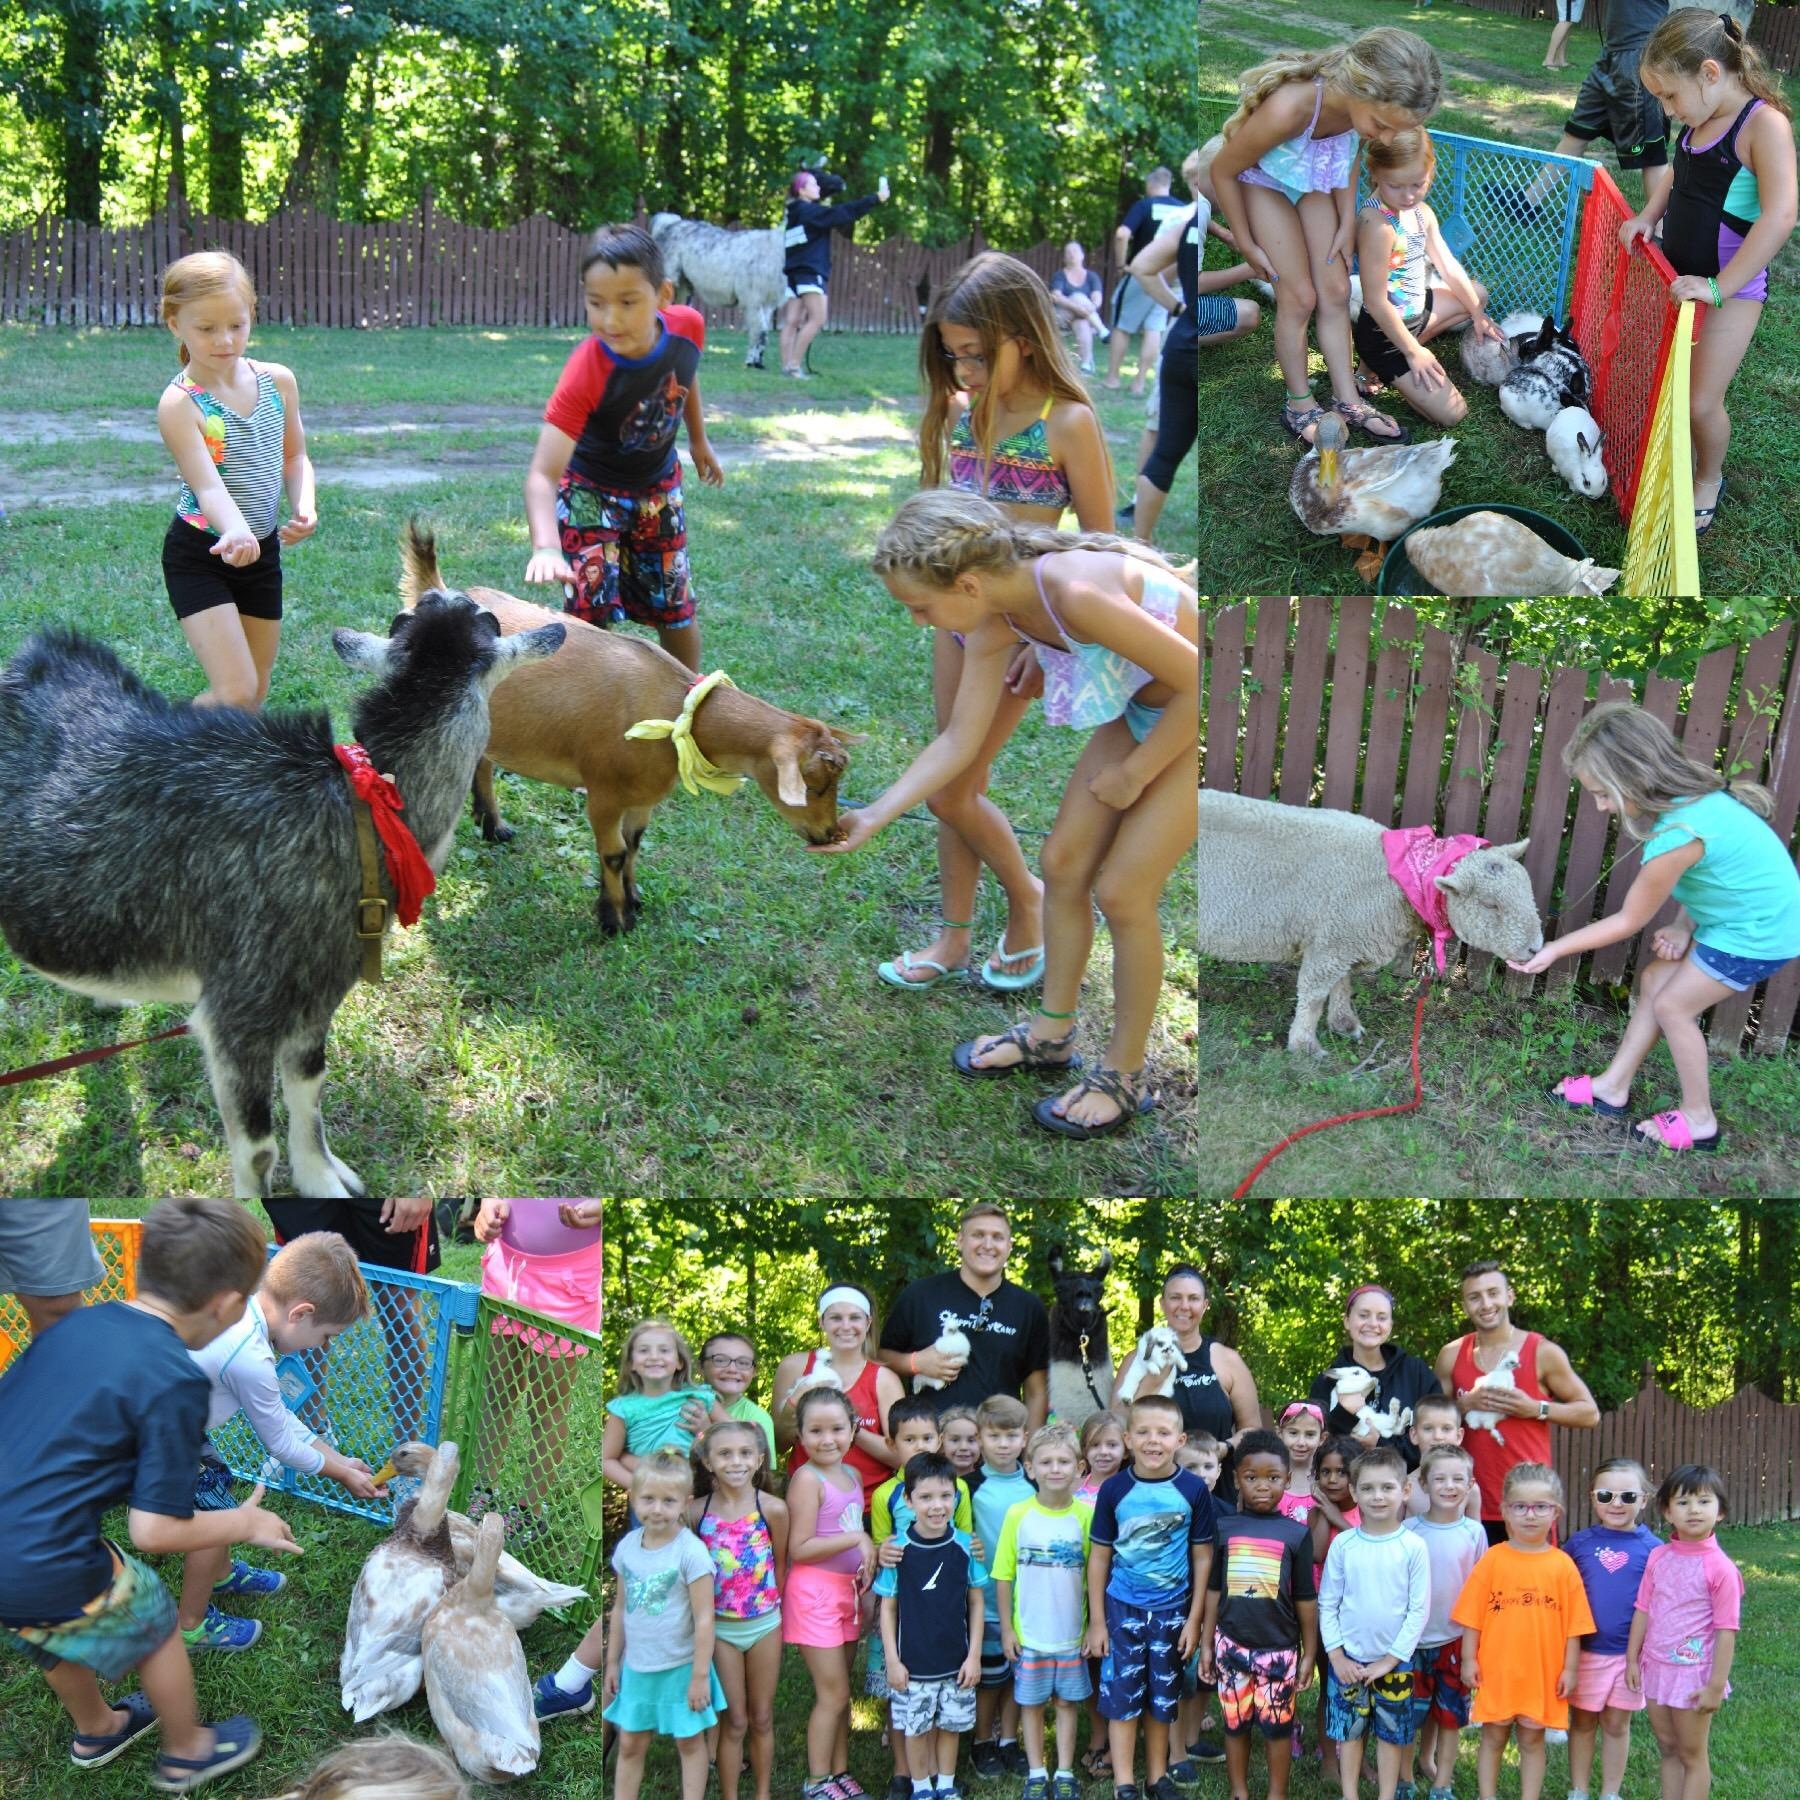 Chartwell's Happy Day Camp Marlton image 55